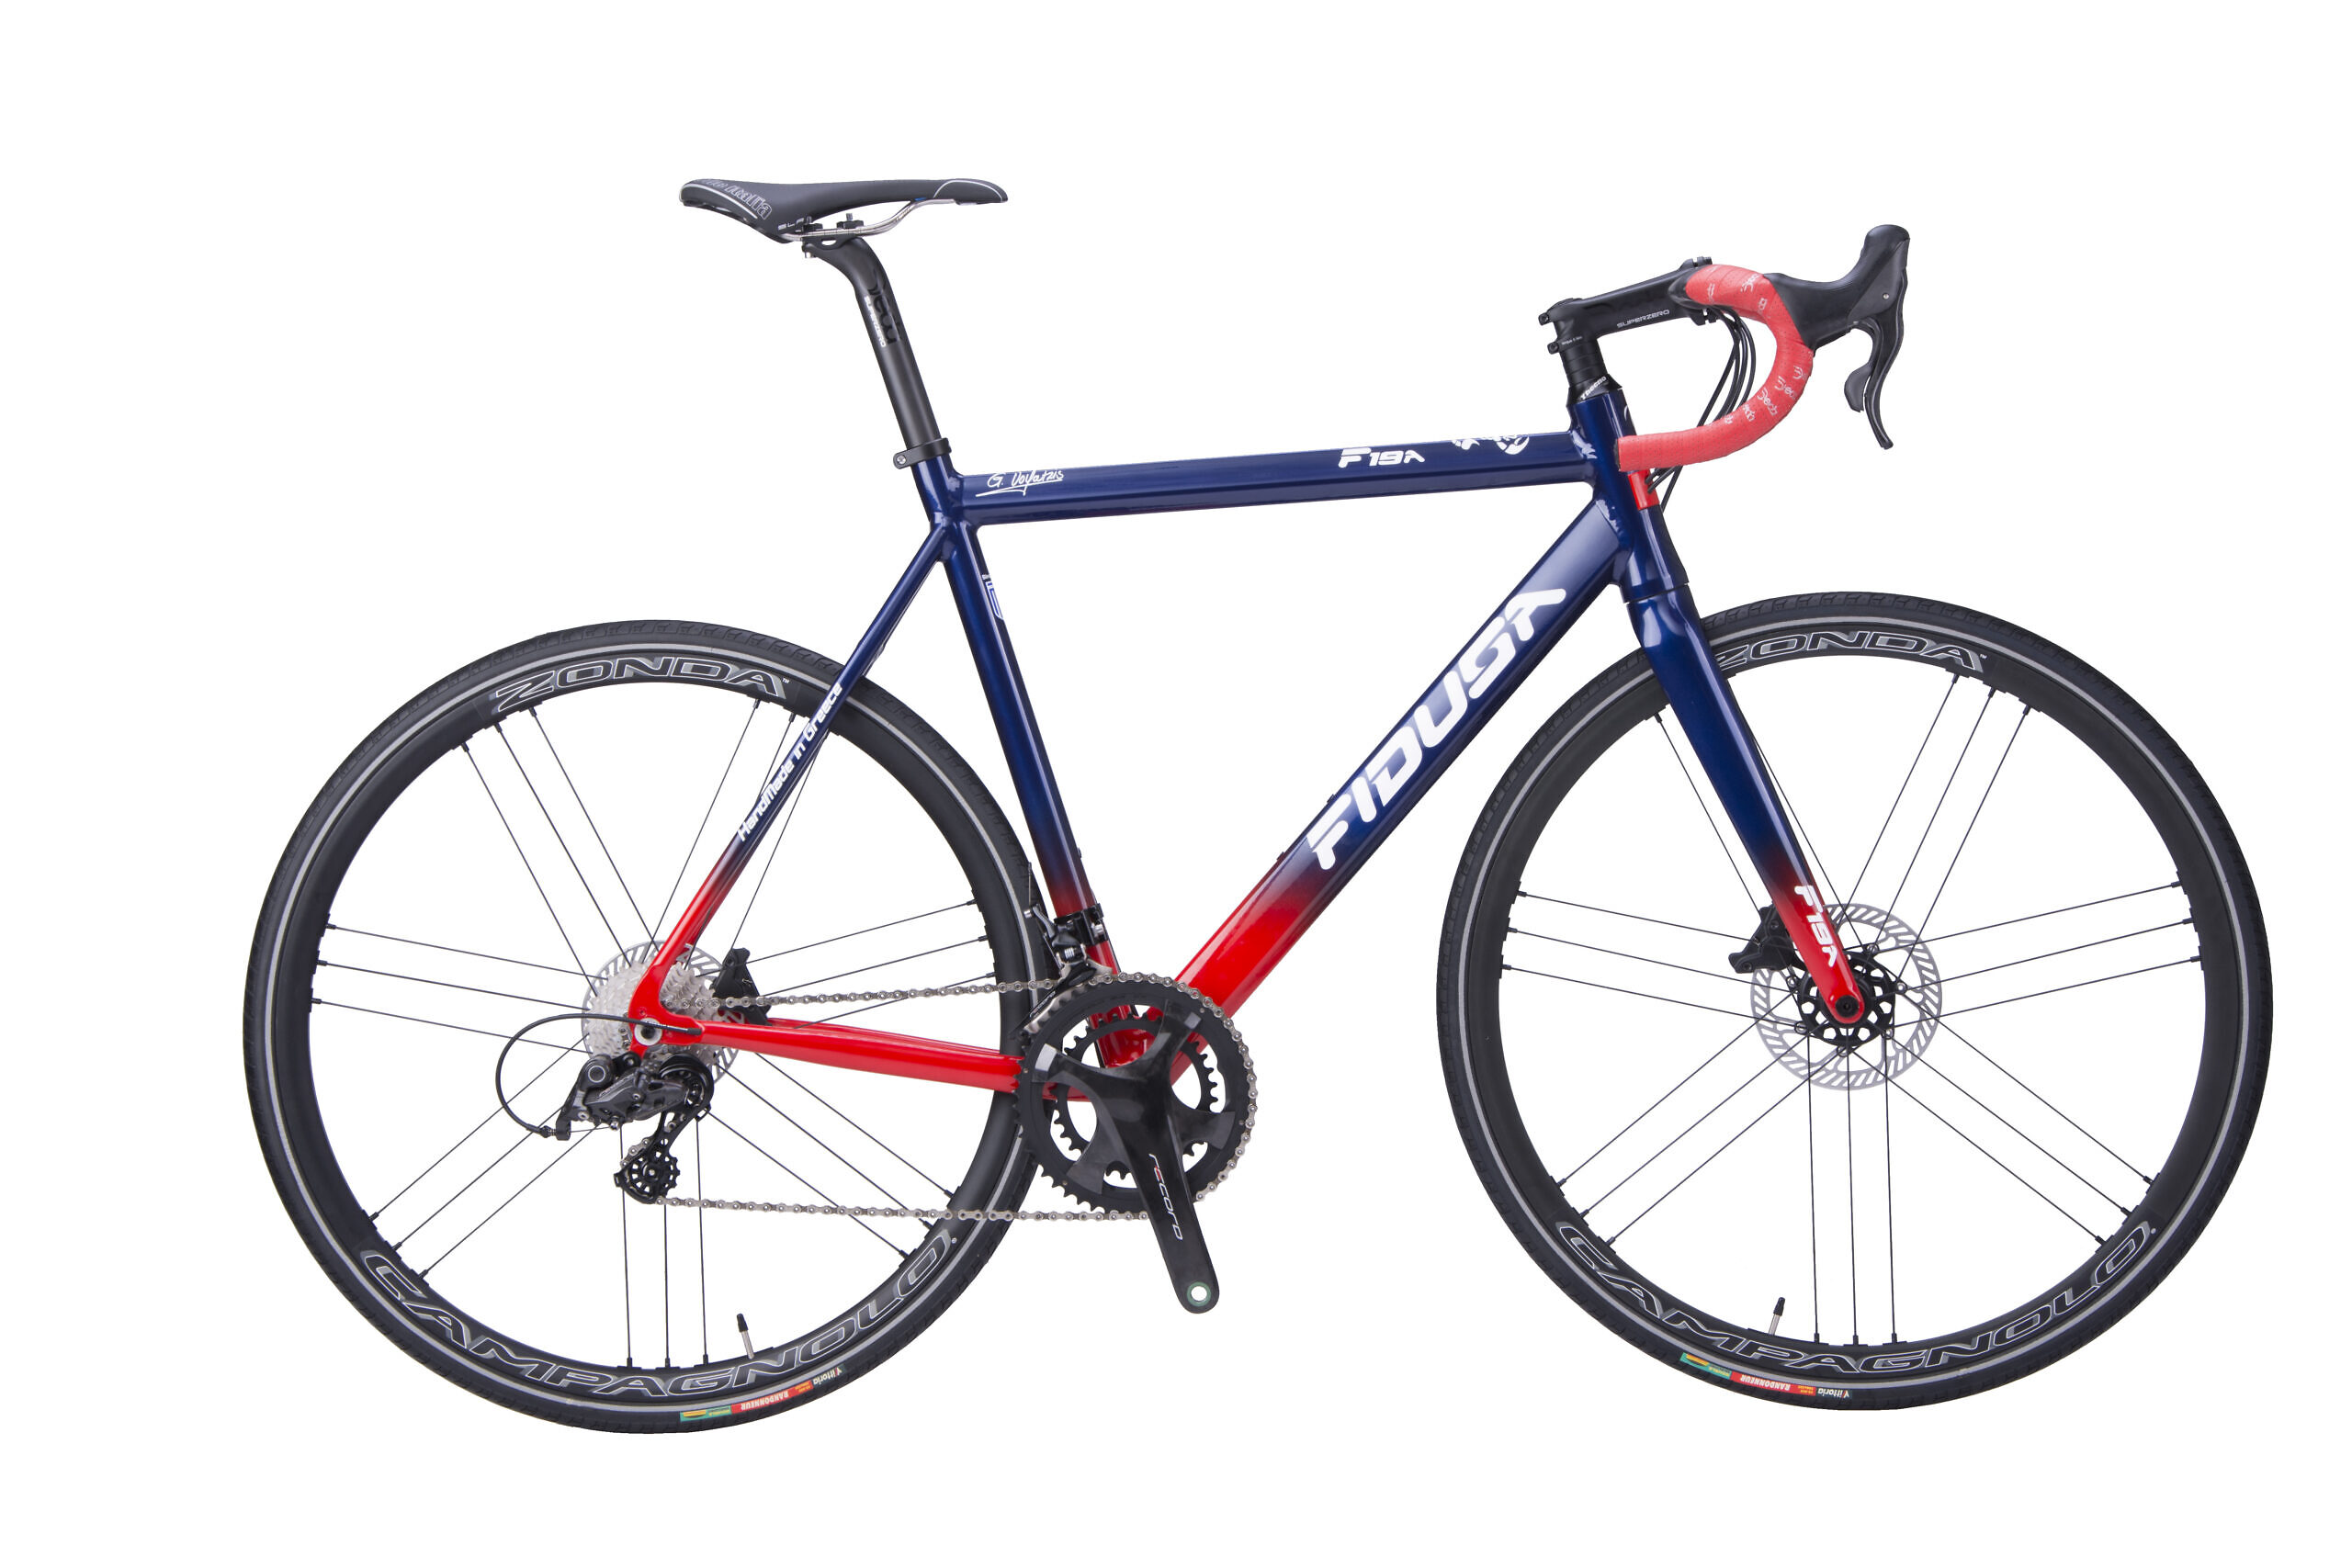 STATHIS-ALLOY-land-CLEAR-scaled F19A Alloy Aero Road Disc Bicycle